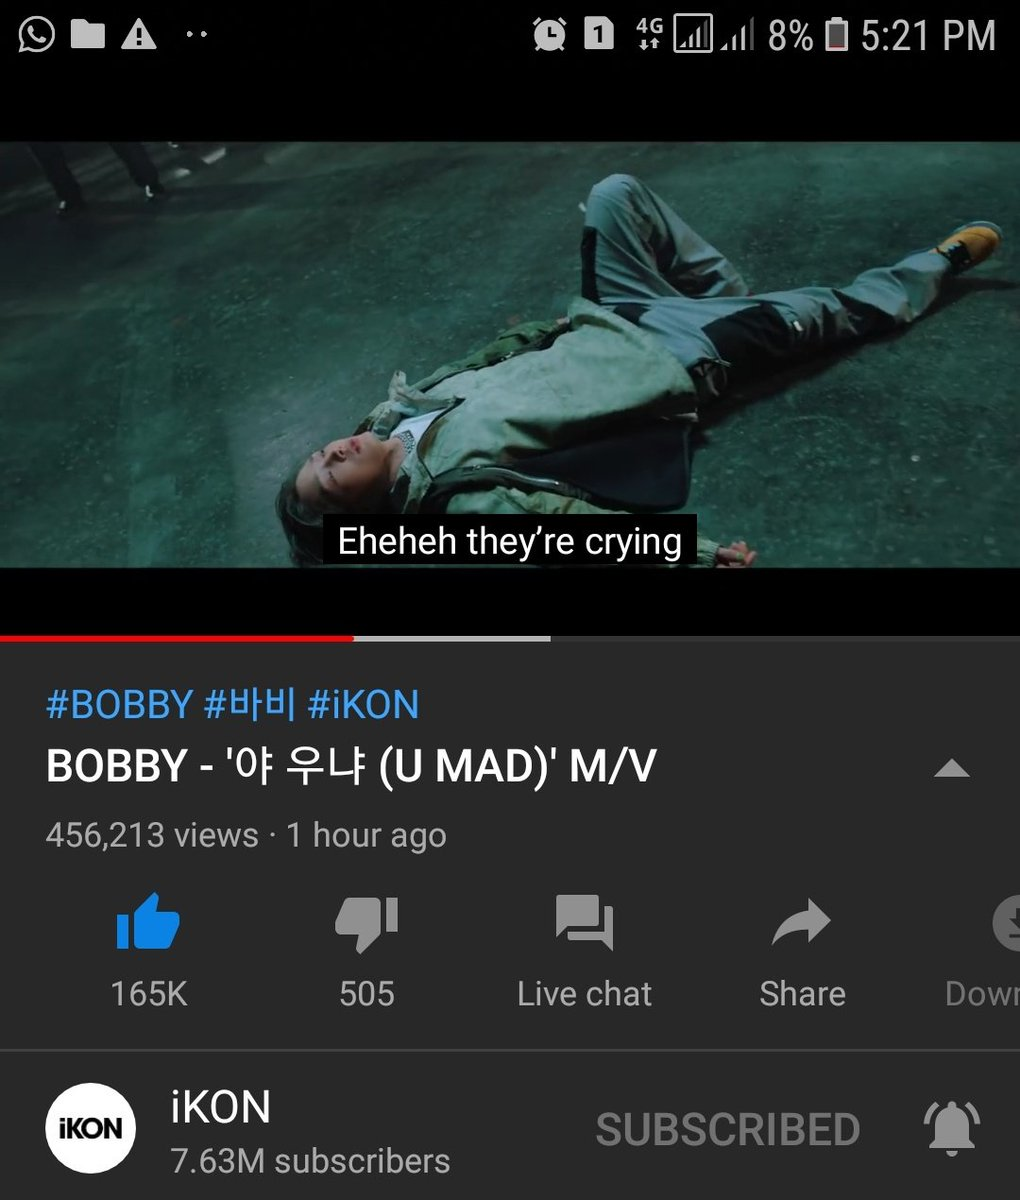 @chickenjune25 Happy birthday 🎉 Thank for the GA, wish me luck 💜  BOBBY SOLO COMEBACK  #BOBBY_UMad_OutNow  #바비_야우냐_지금 @bobbyranika @YG_iKONIC